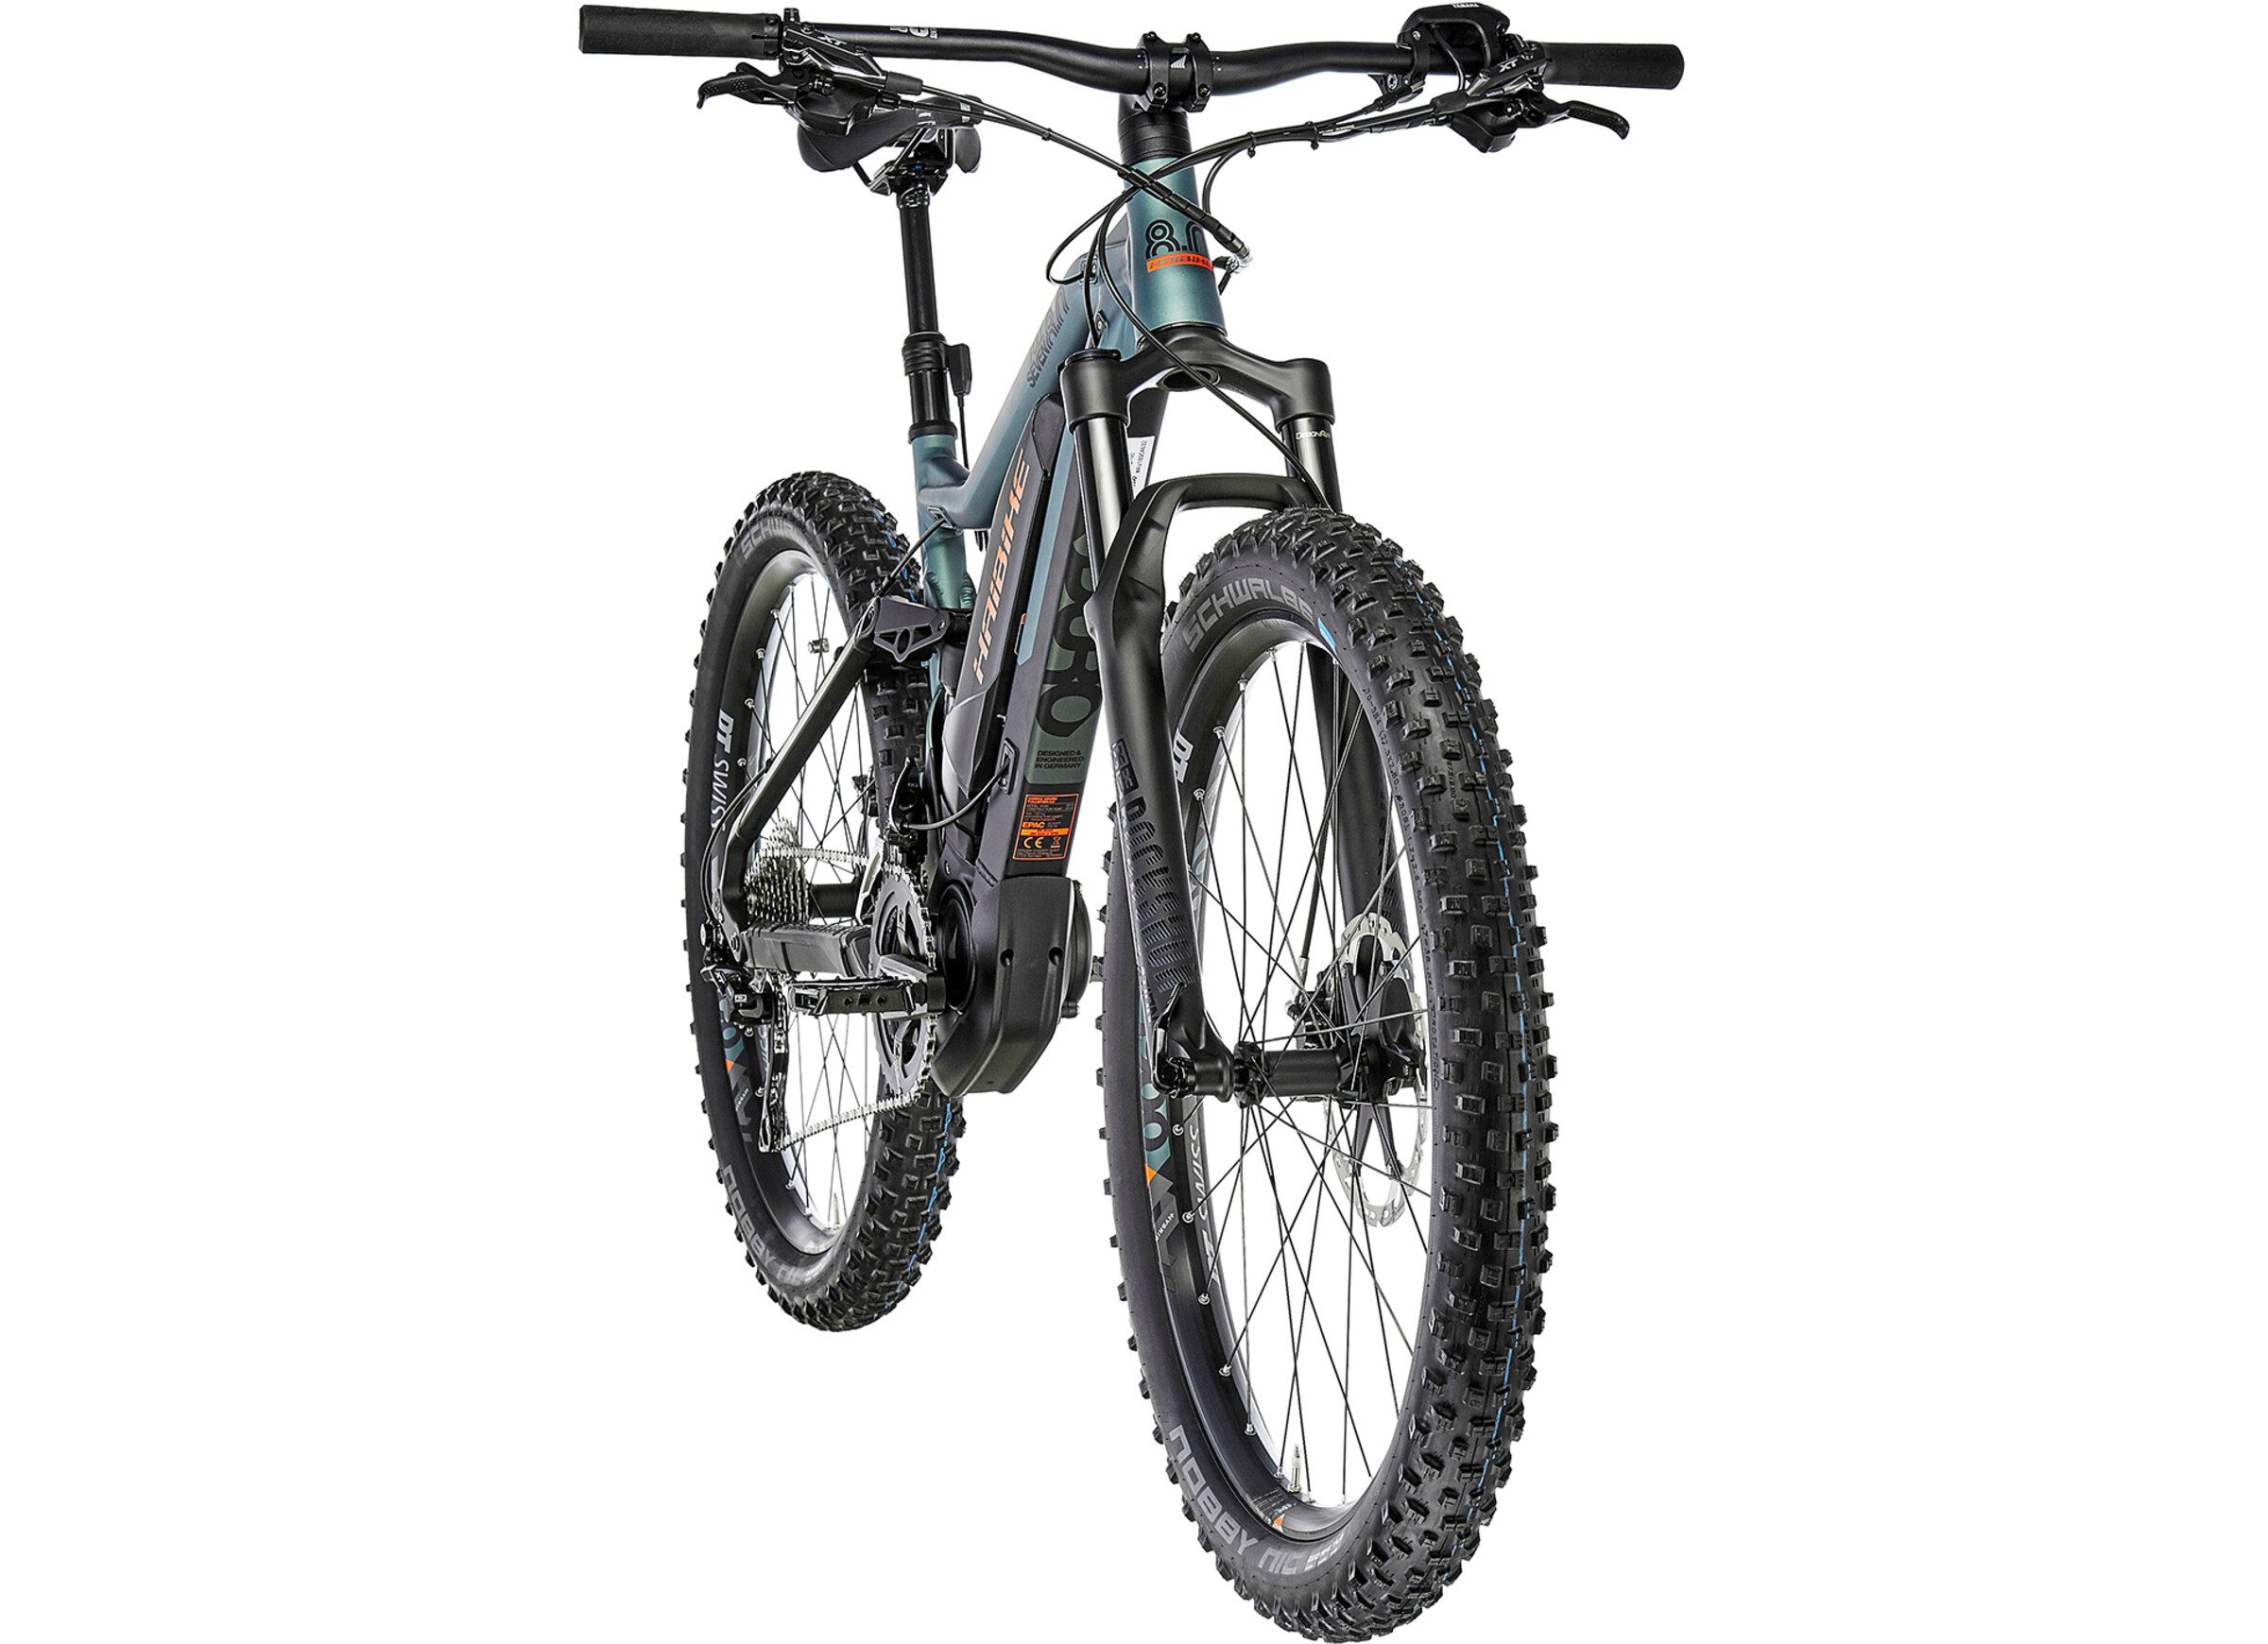 95fe5f559d5 HAIBIKE SDURO FullSeven 8.0 E-MTB Full Suspension black at Bikester ...